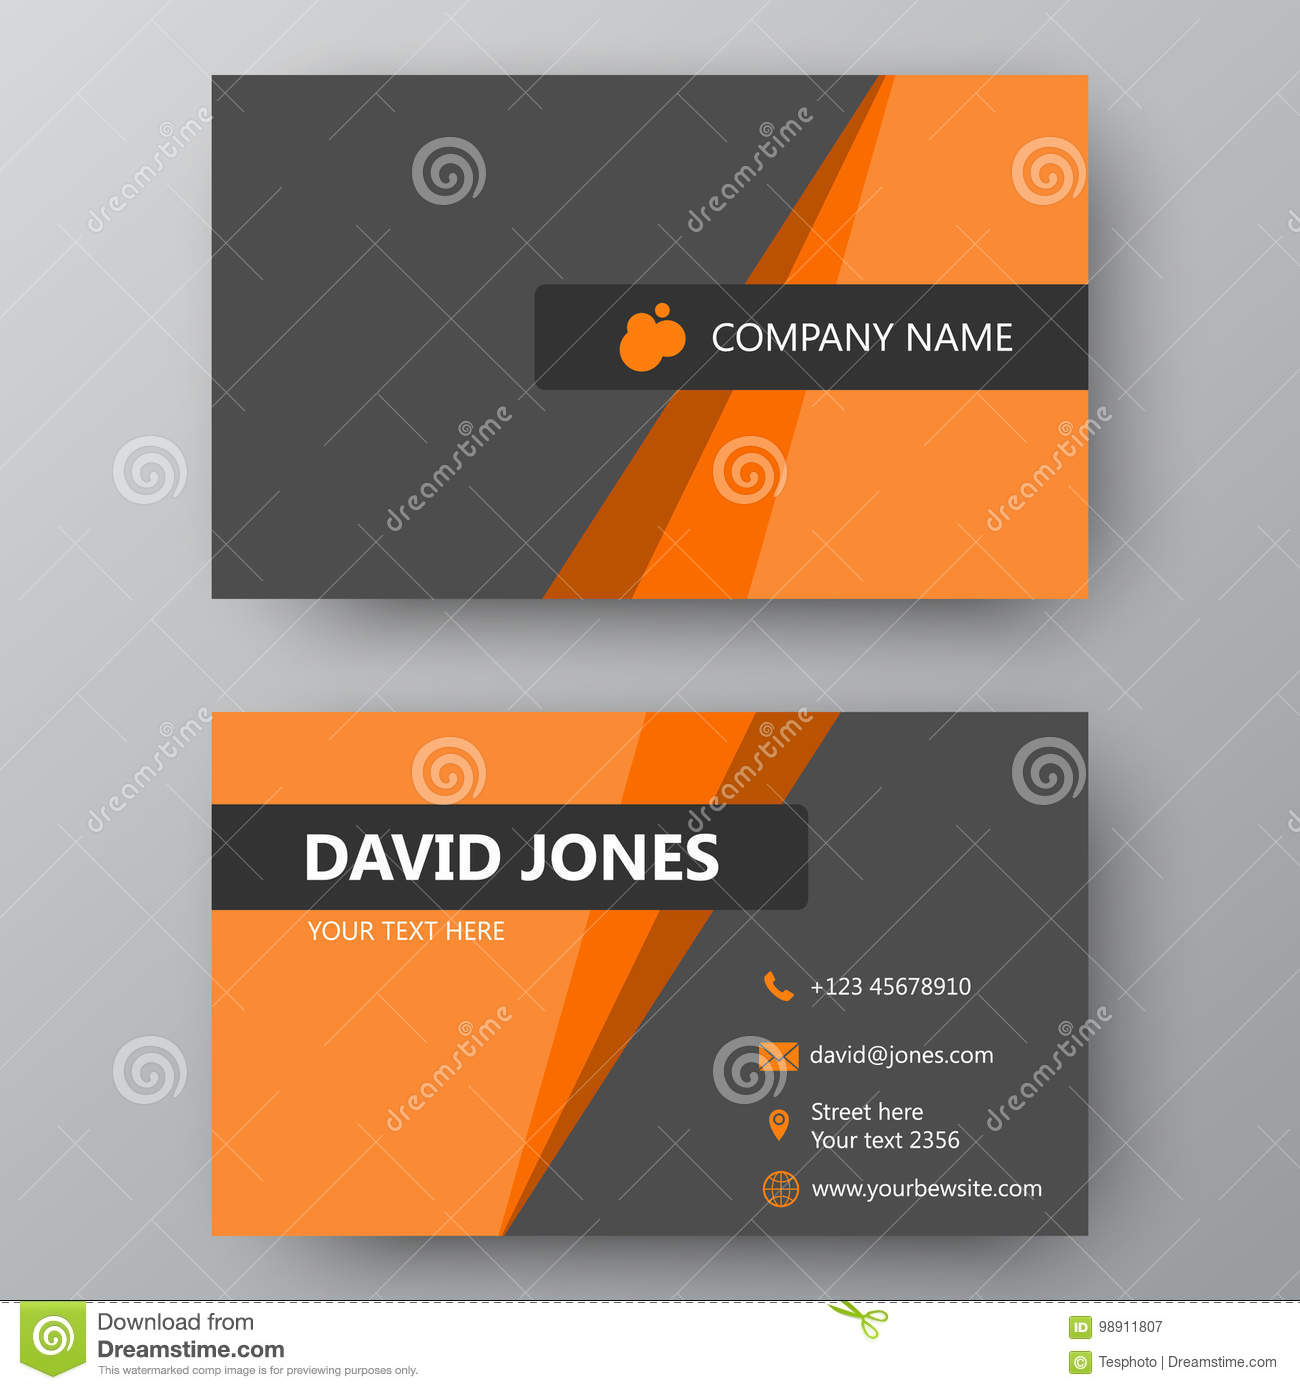 Modern presentation card with company logo vector business card modern presentation card with company logo vector business card branding cards flashek Gallery